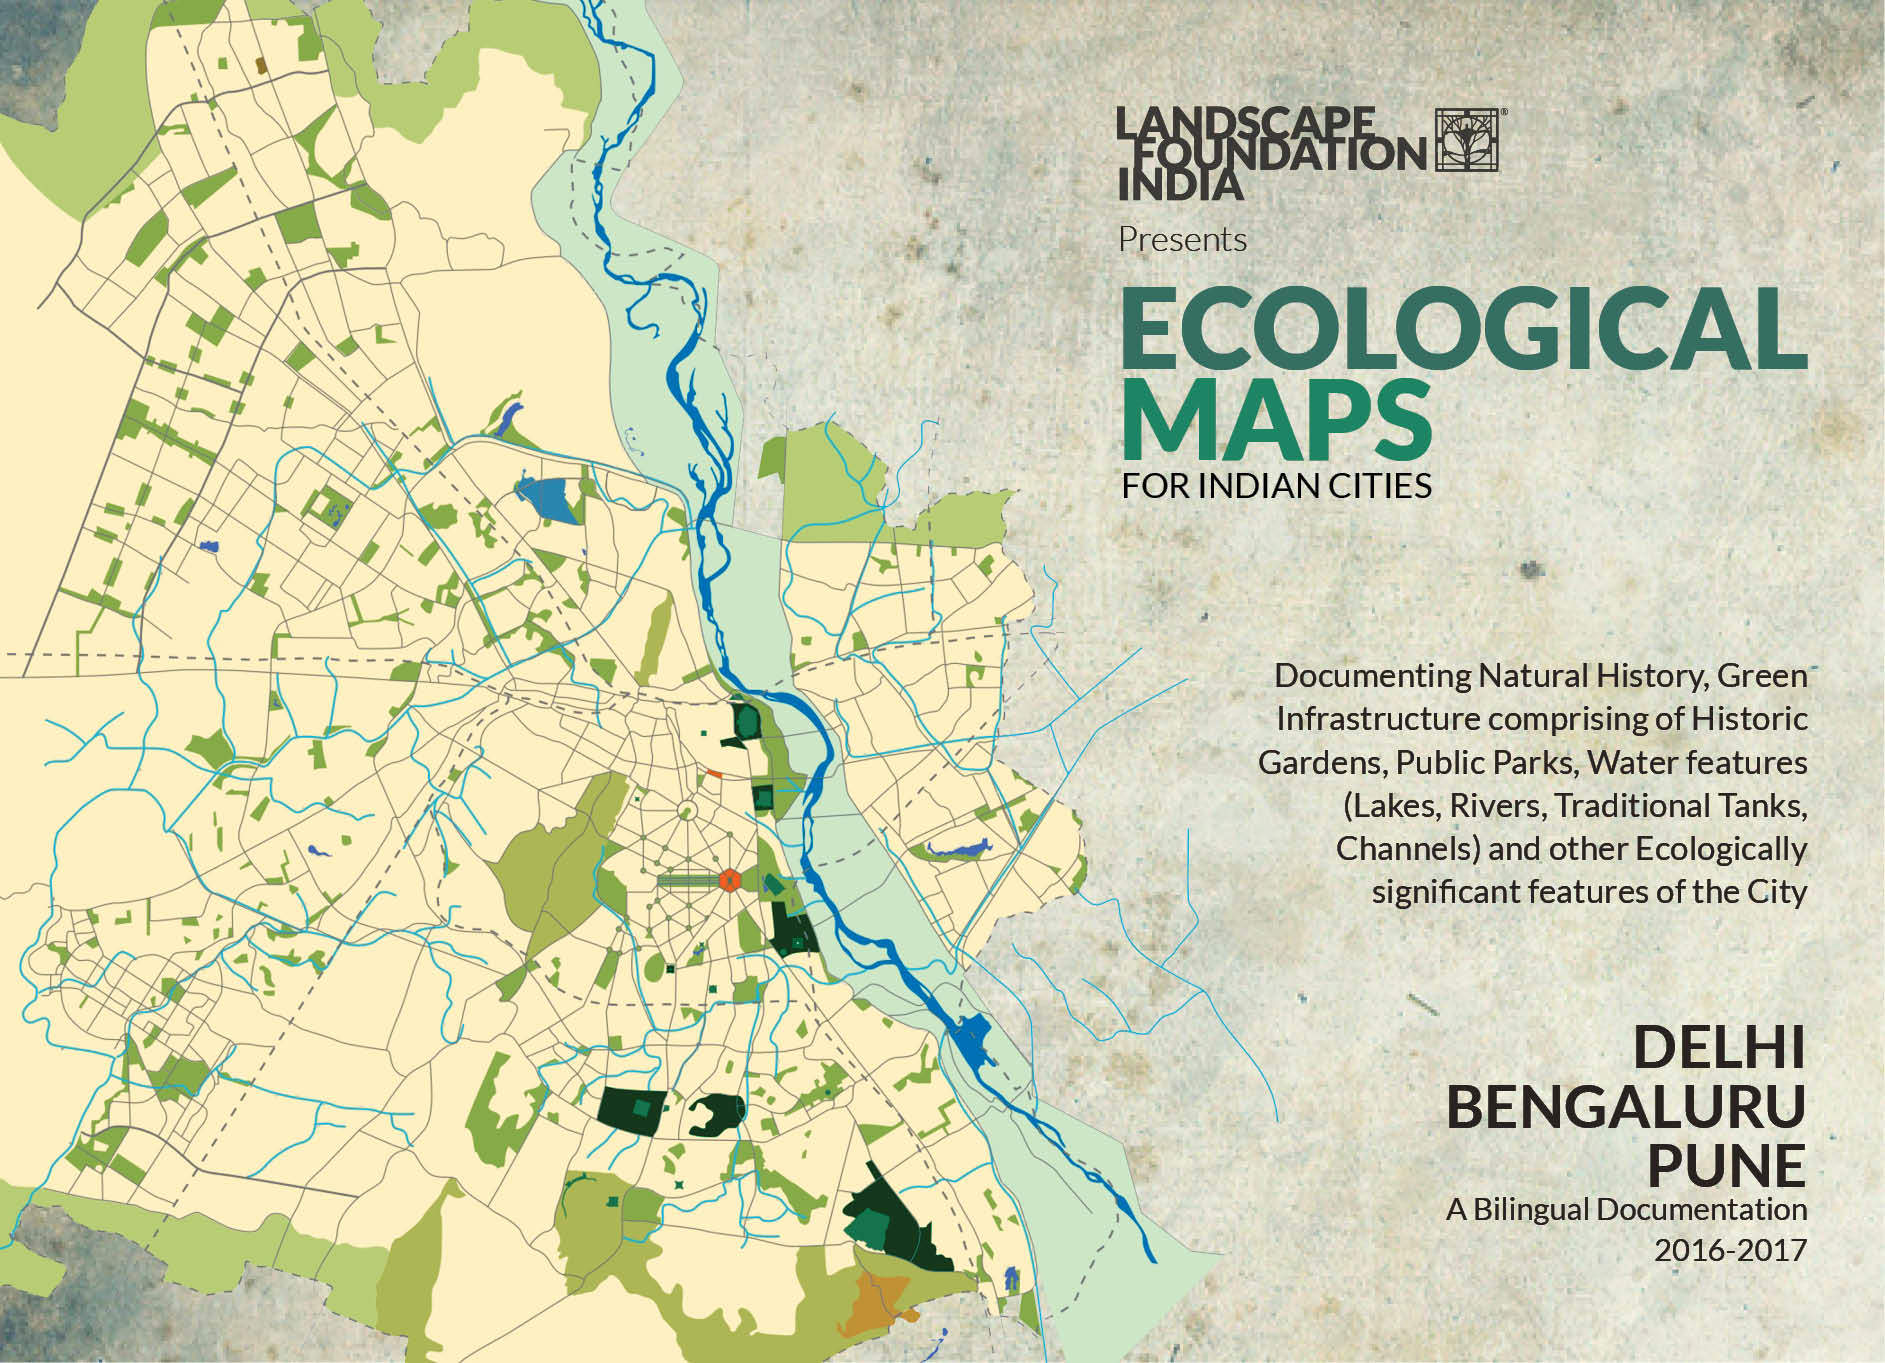 Ecological Maps of Indian Cities | Milaap on map of hardoi india, map of colombo india, map of kolhapur india, map of bihar state india, interactive map of india, map of kanpur india, map of guntur india, map of mumbai india, map of kollam india, map of pushkar india, map bangalore india, map of bay of bengal india, map of meghalaya india, map of varanasi india, map of pune india, map of istanbul turkey, map of rajkot india, map of gorakhpur india, map of princely states india, map of san pedro sula honduras,